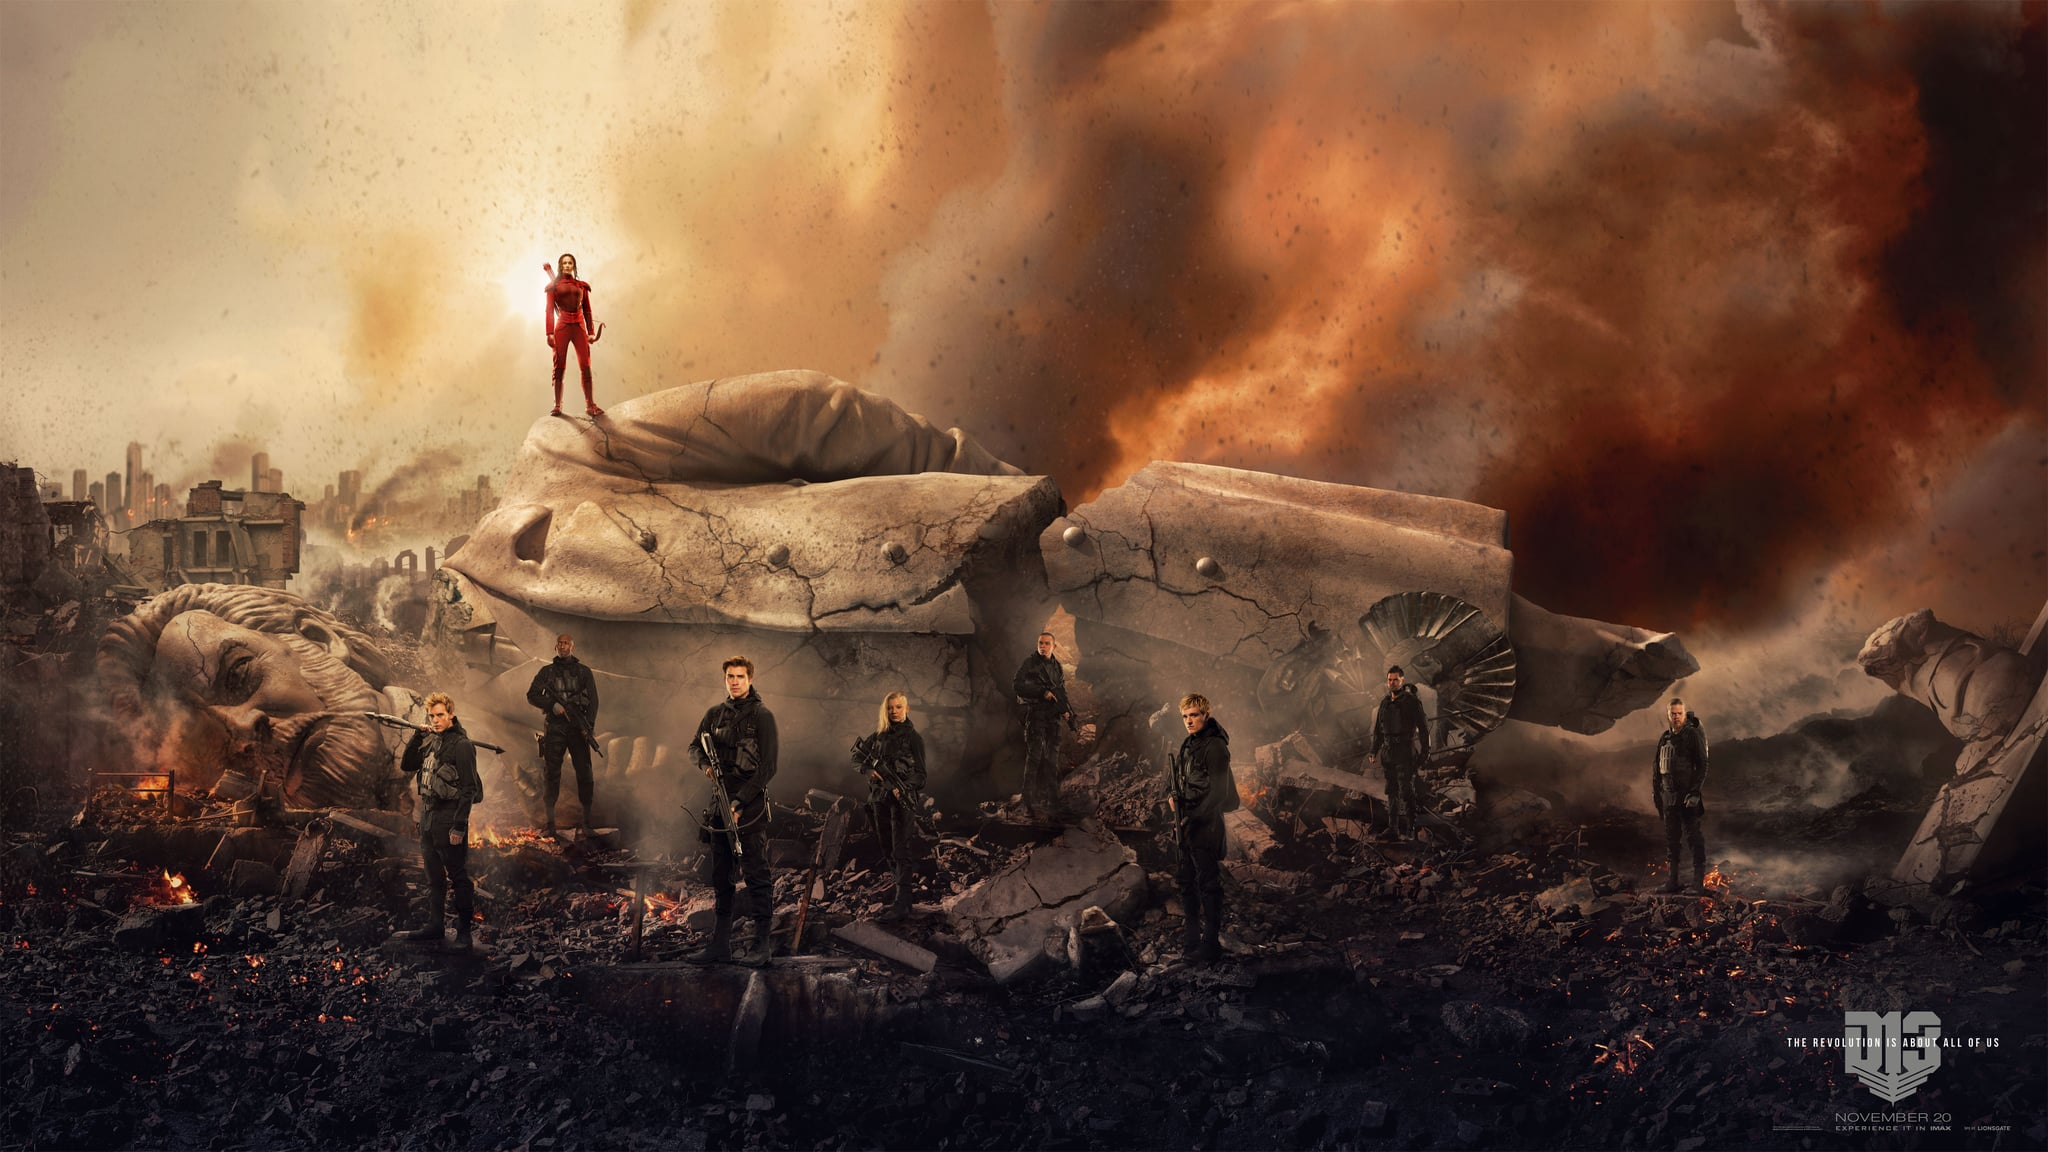 Mockingjay Part 2 Poster With President Snow Statue Popsugar